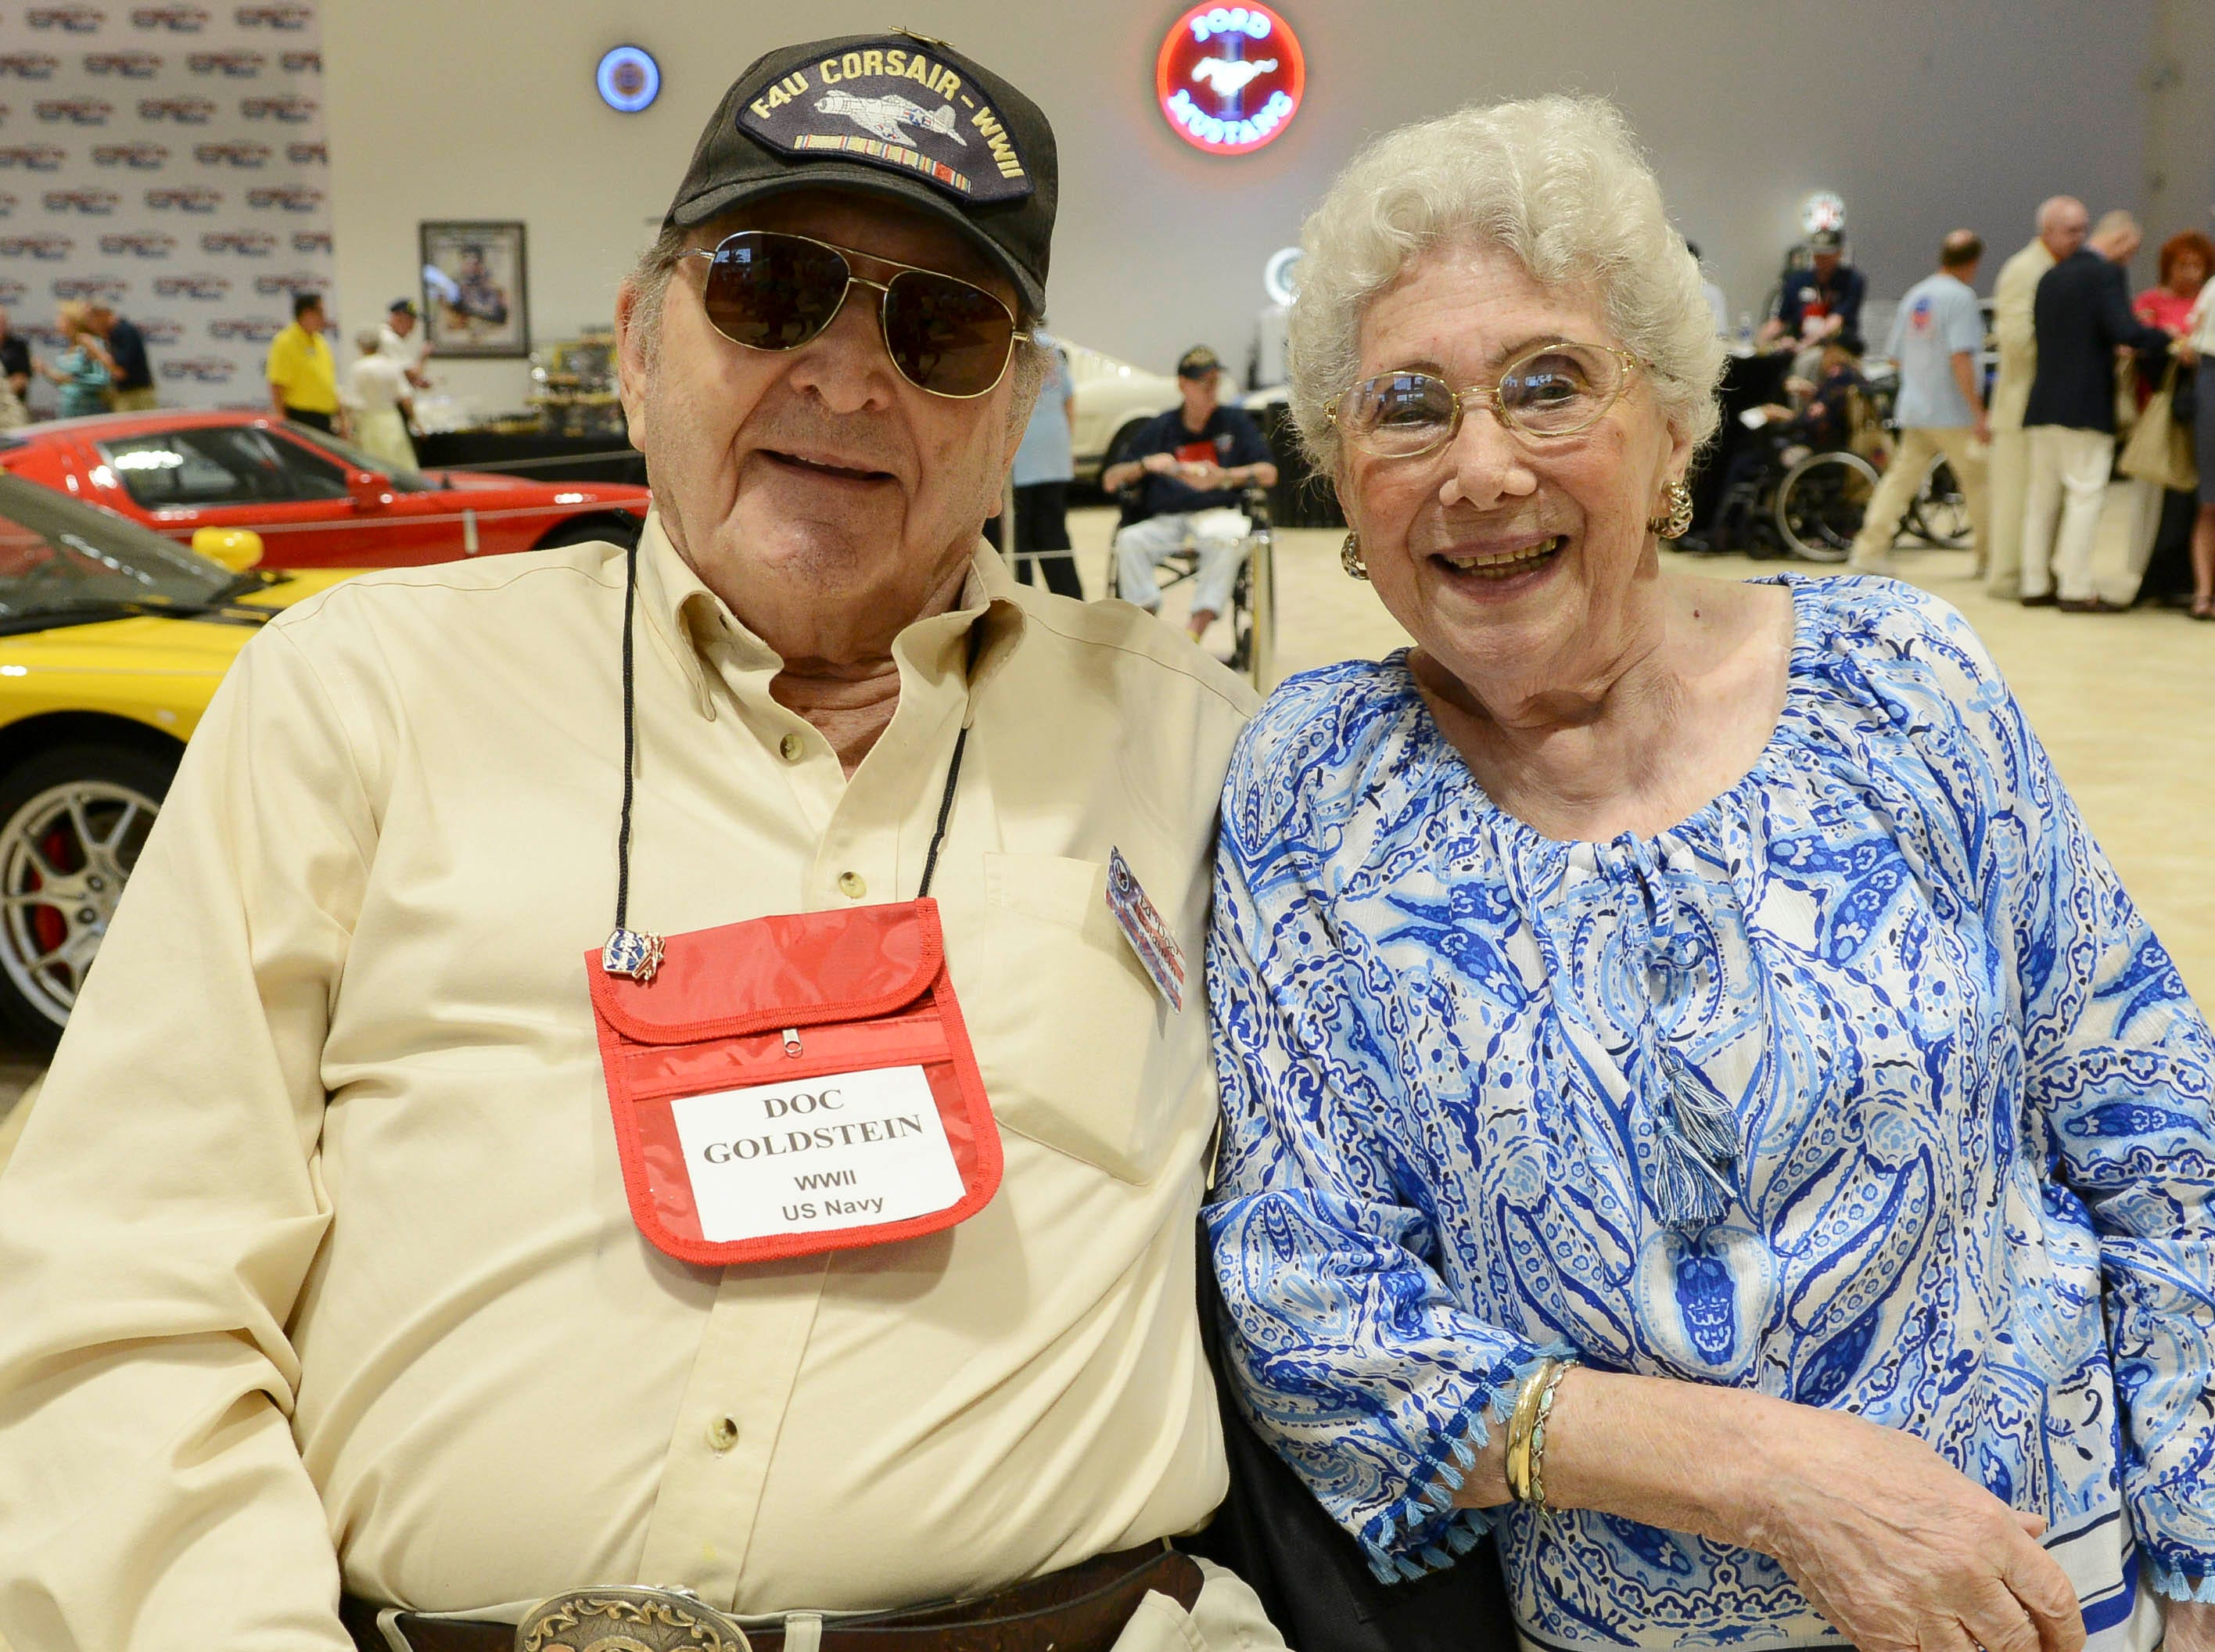 Don and Anne Goldstein get their picture taken during the Stars and Stripes fundraiser at American Muscle Car Museum. The event was a fundraiser for Space Coast Honor Flight.